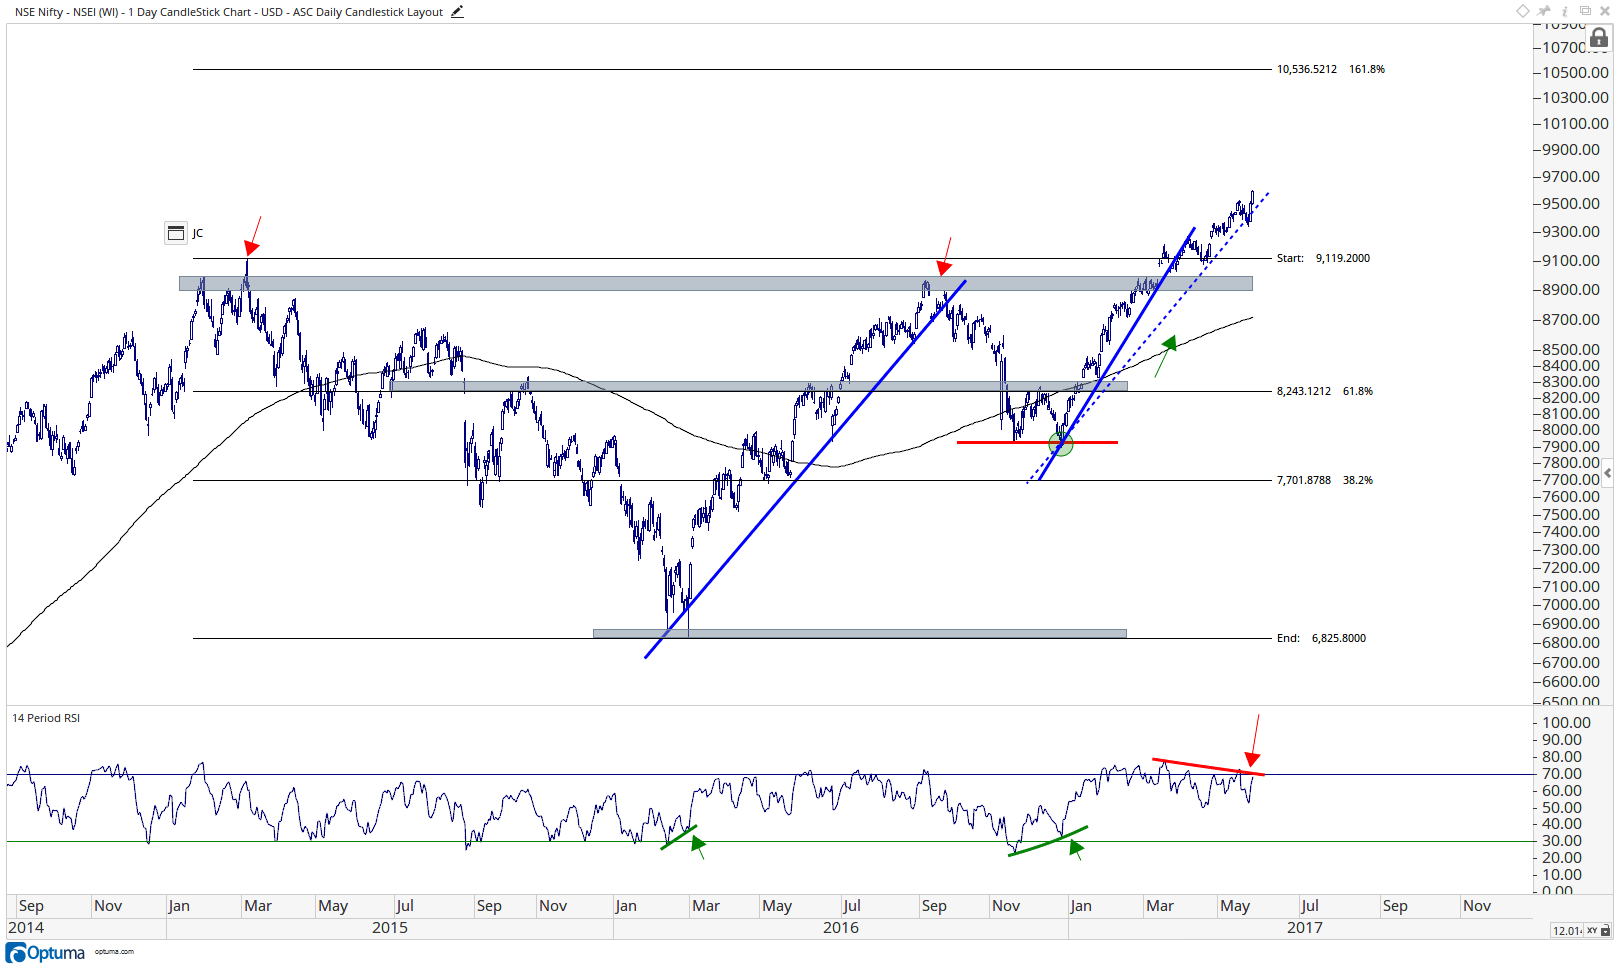 Nifty 50 Index